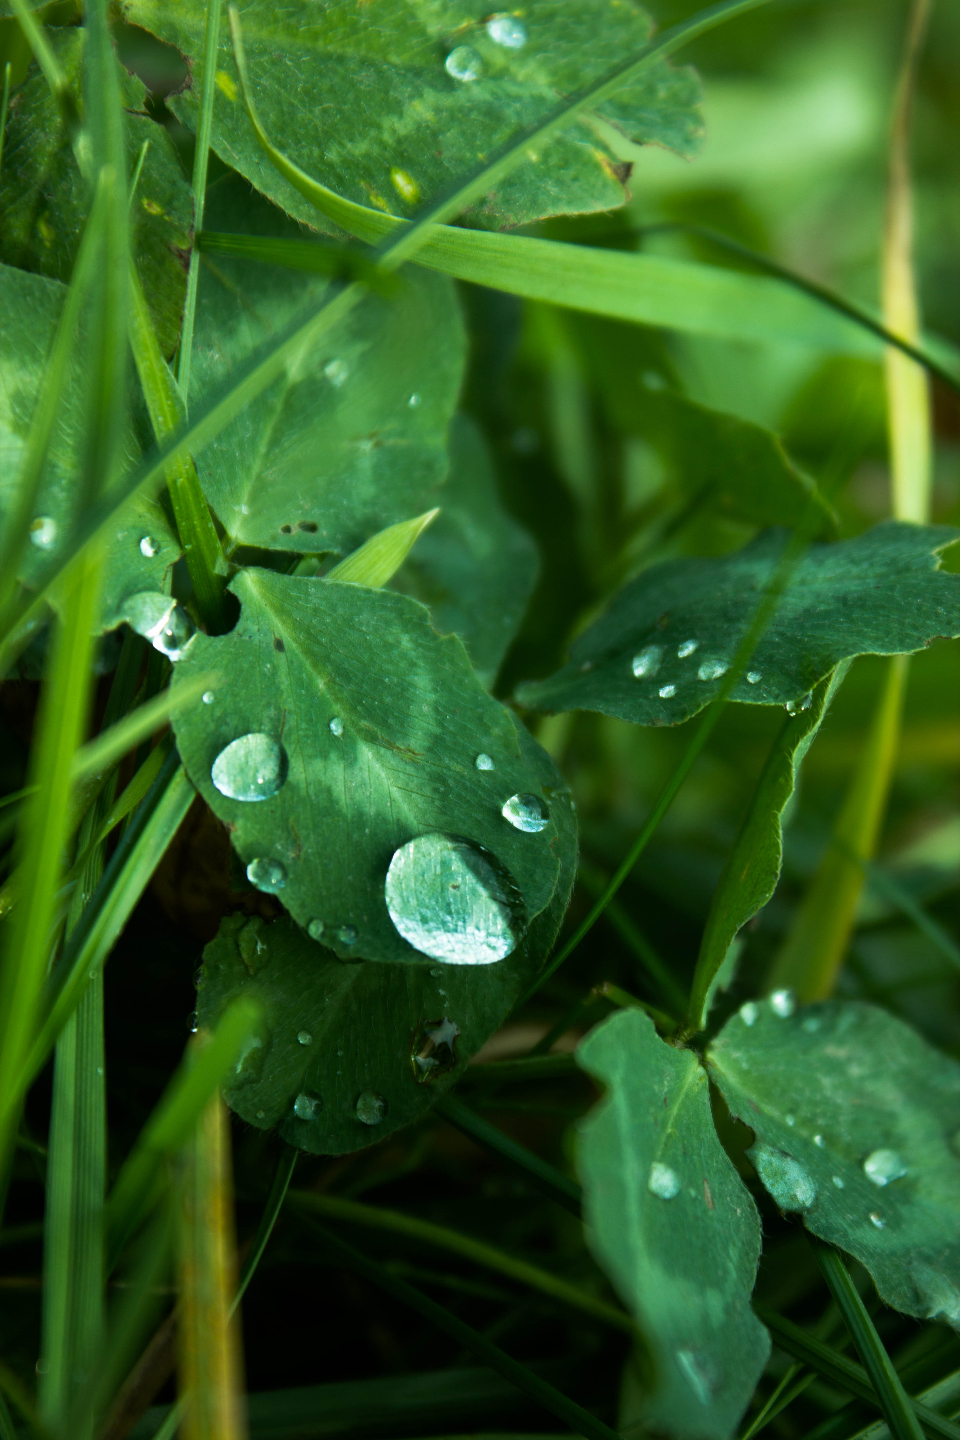 grass plant leaf leaves water drop rain nature close up dew morning